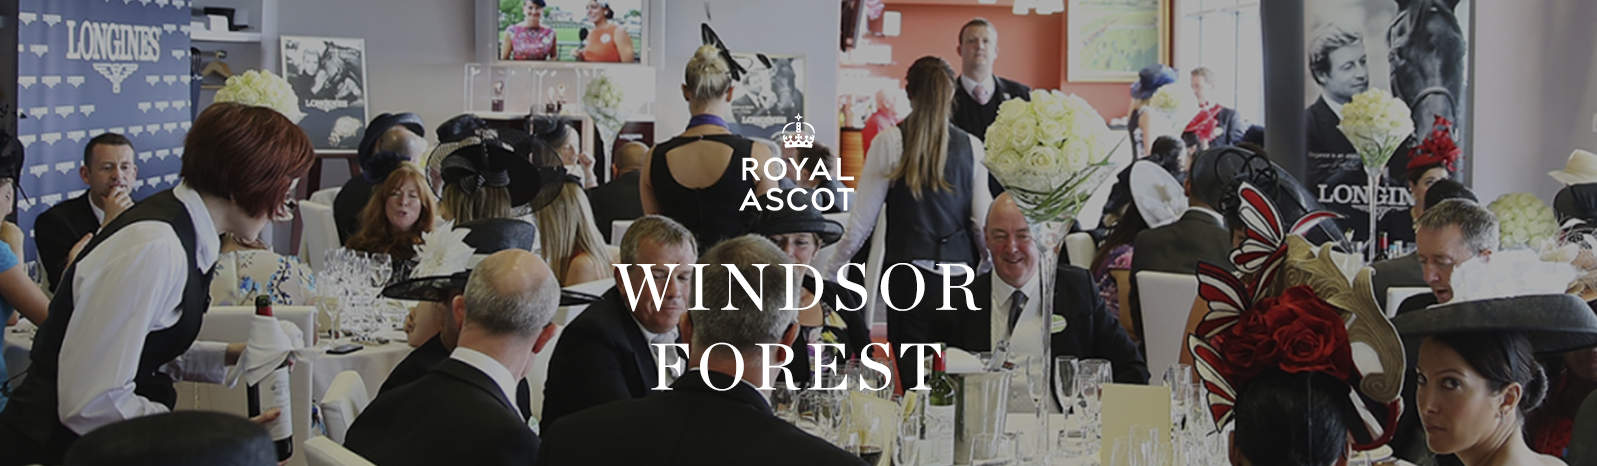 Windsor forest Hospitality package Ascot